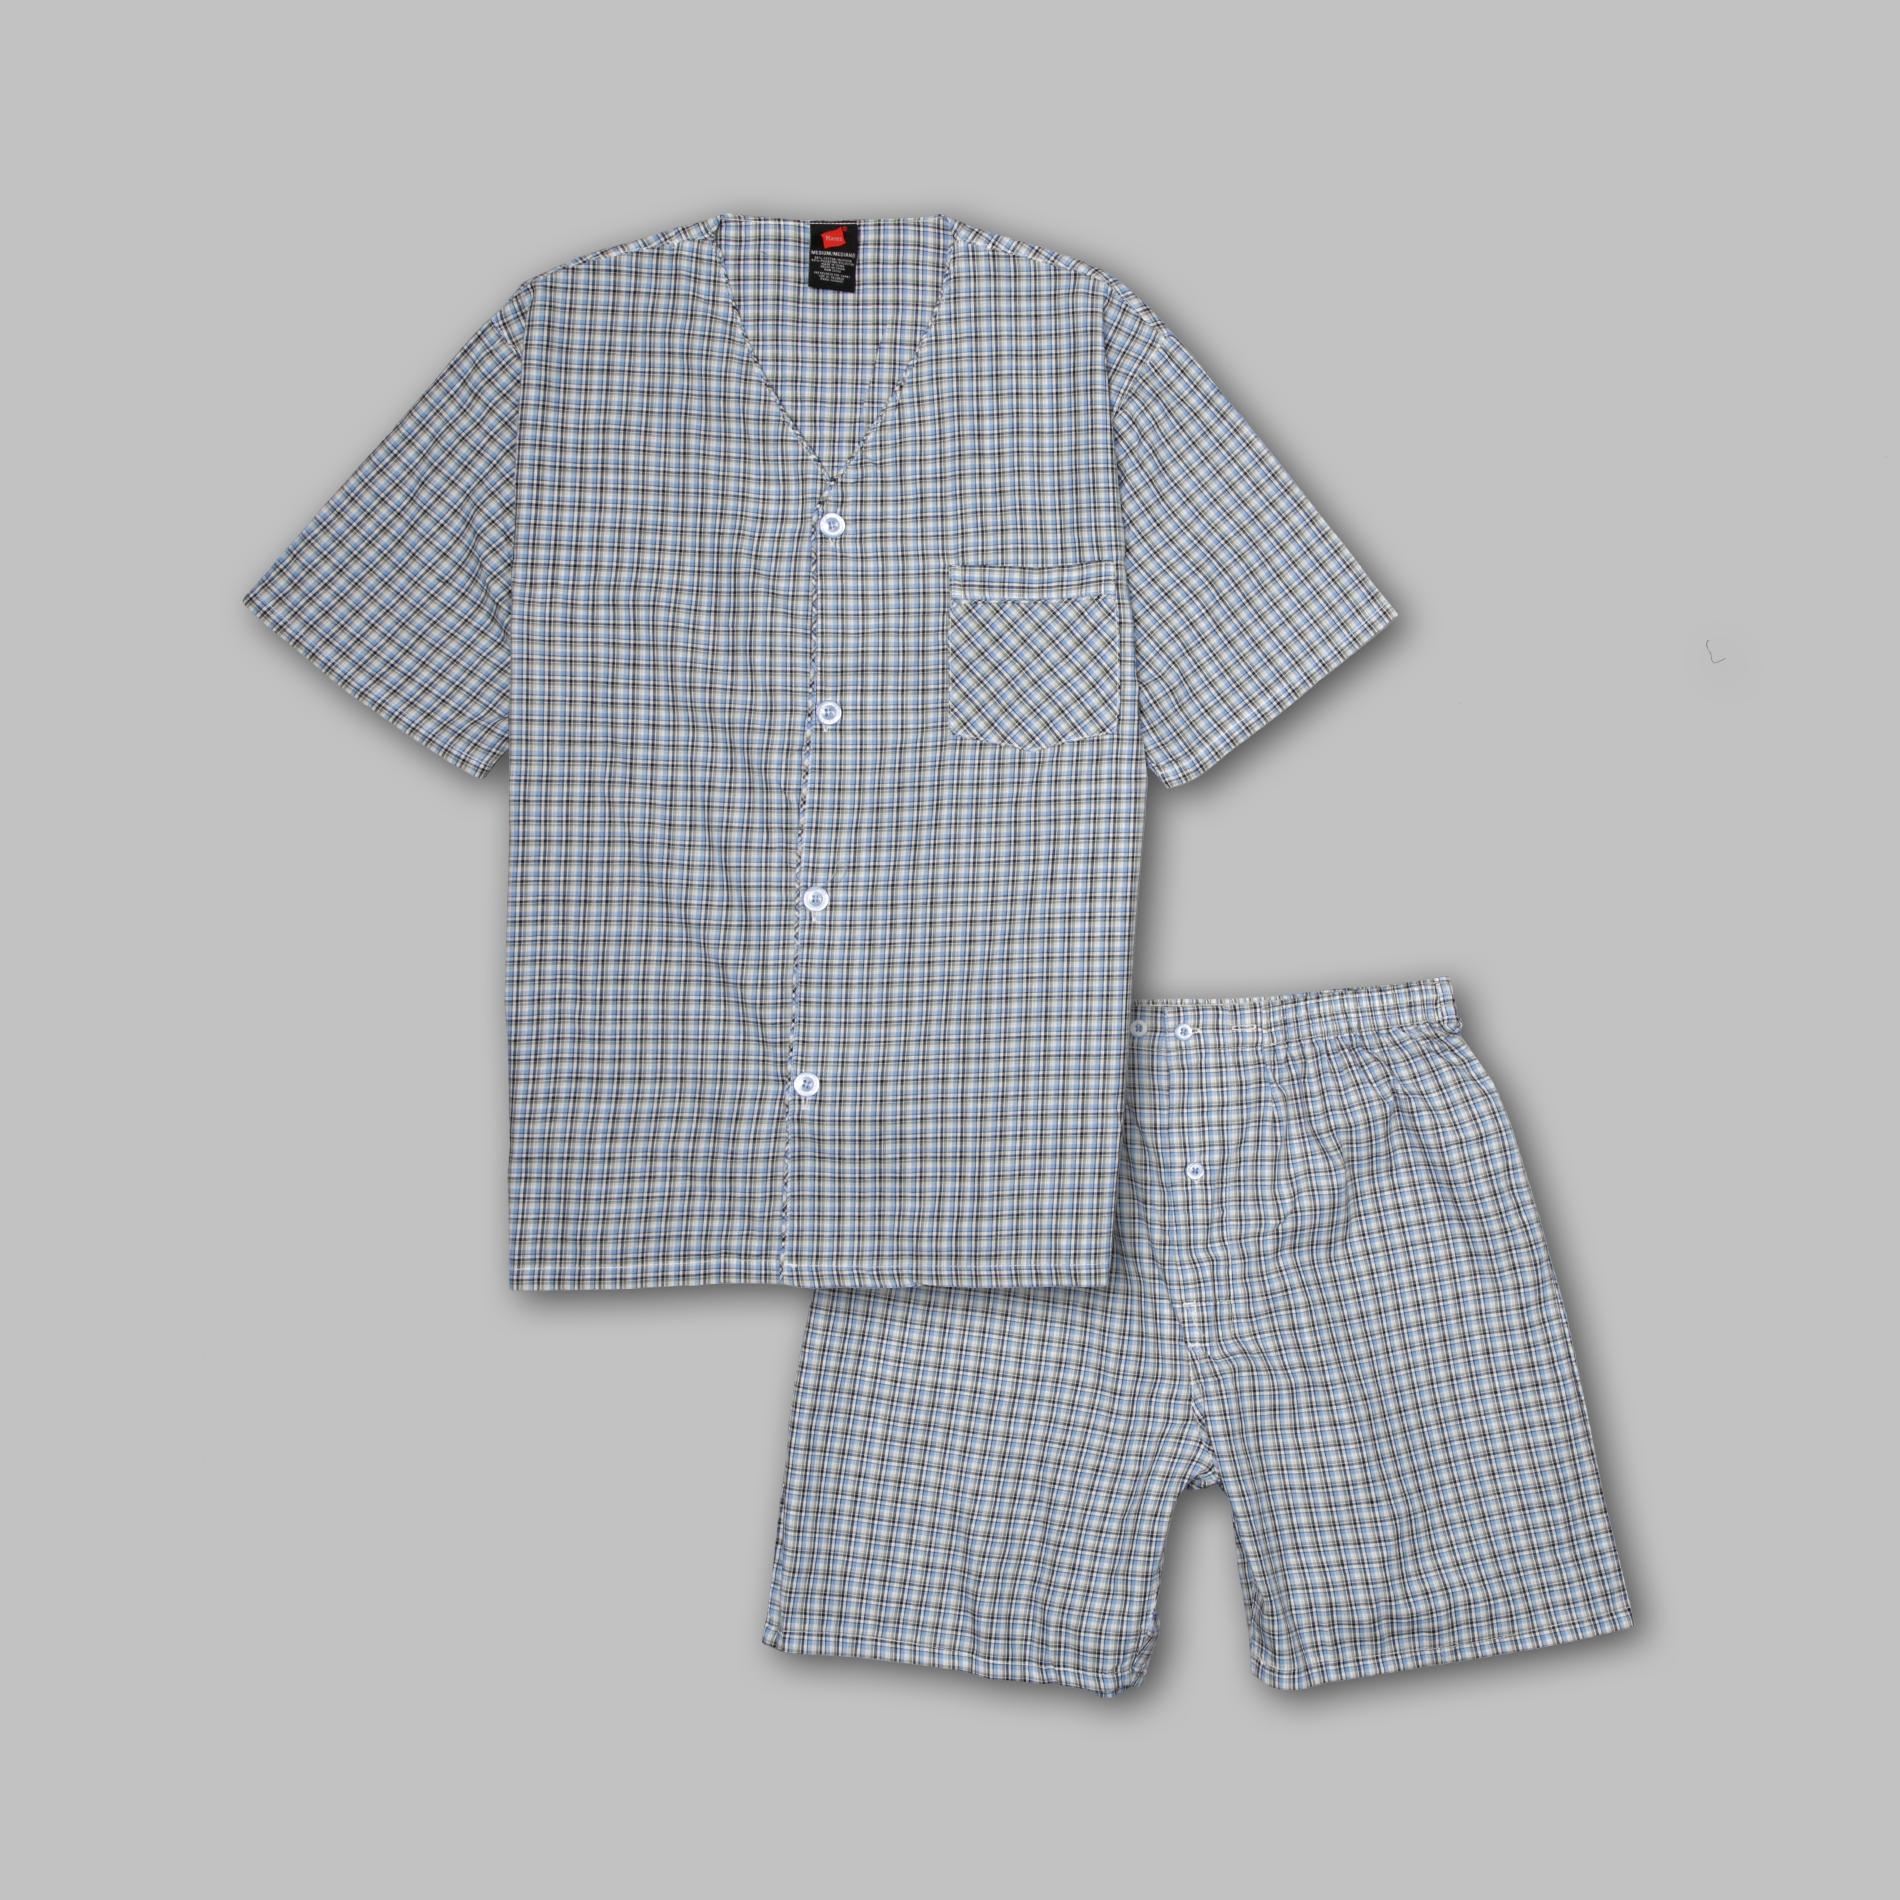 Hanes Men's Pajamas - Checkered at Kmart.com